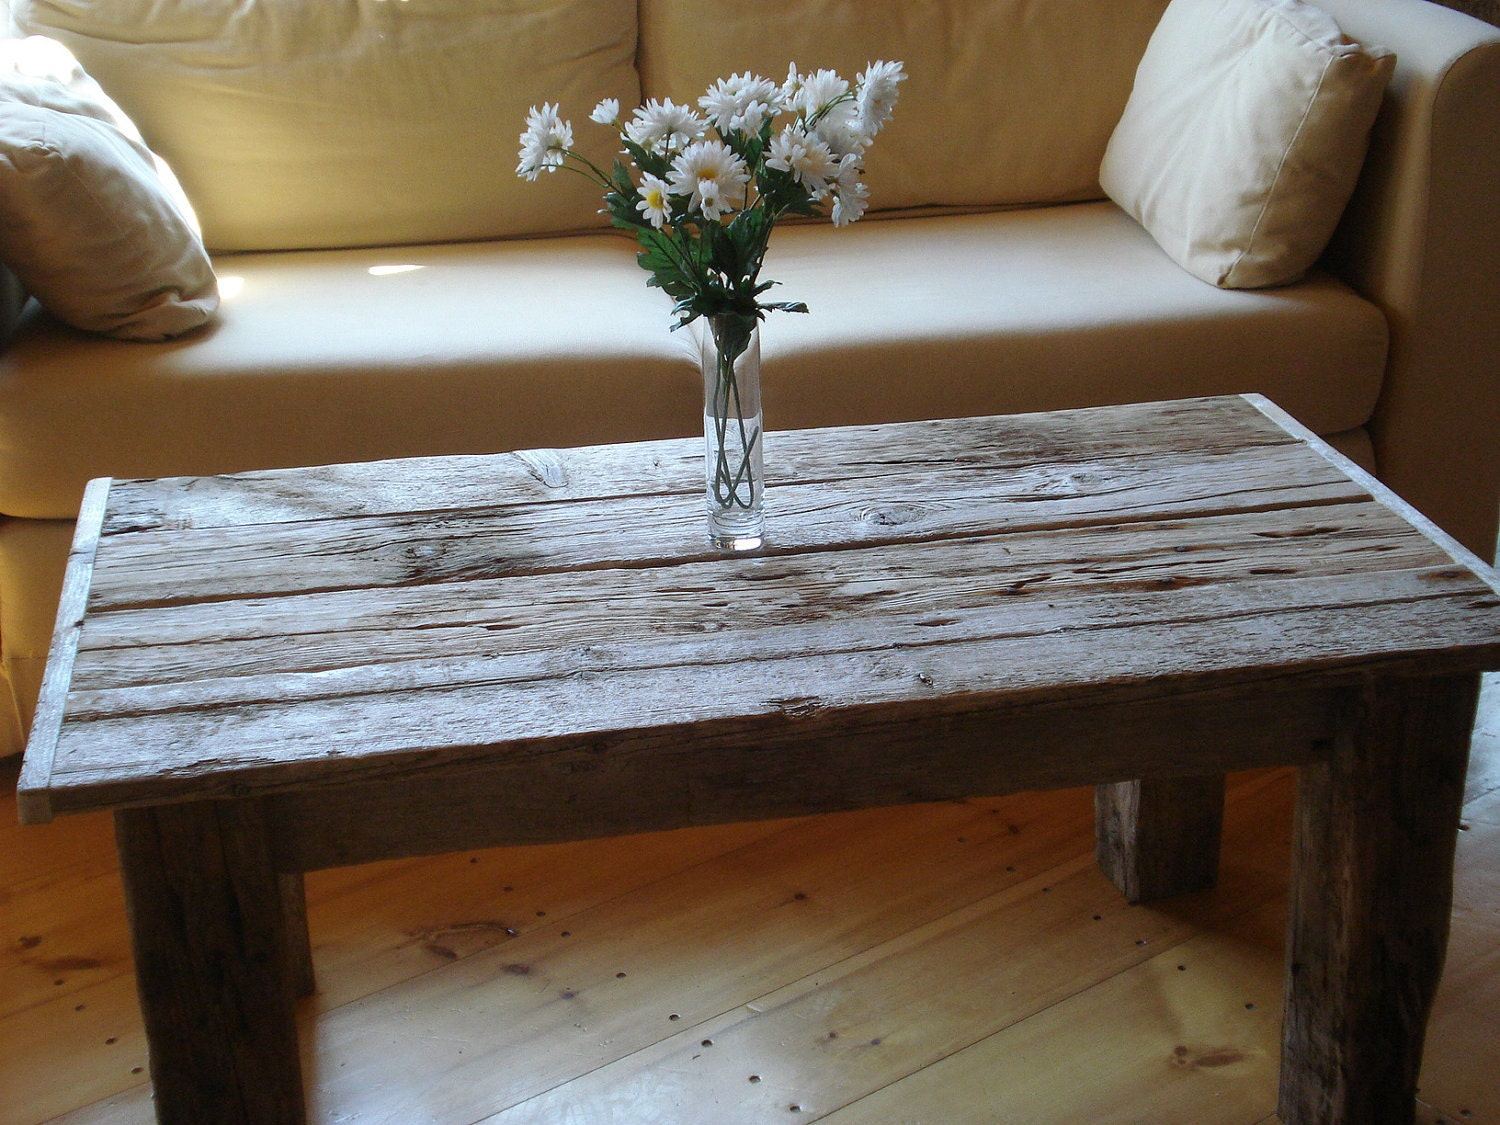 Driftwood coffee table 42 x 22 x 16 20 h for Driftwood tables handmade